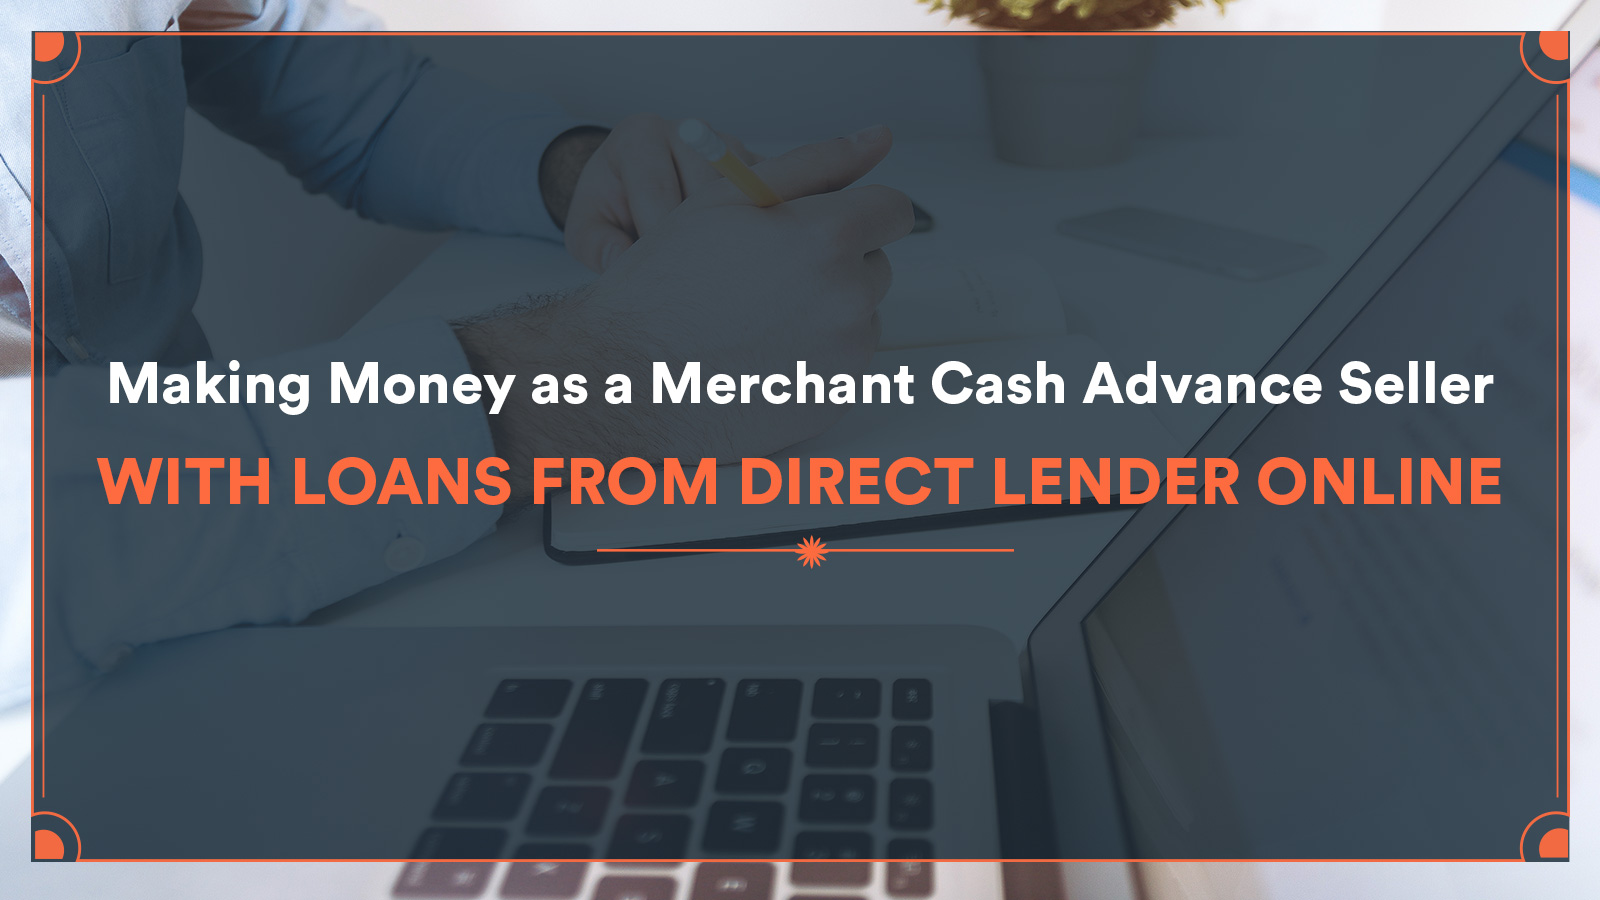 loans from direct lender online